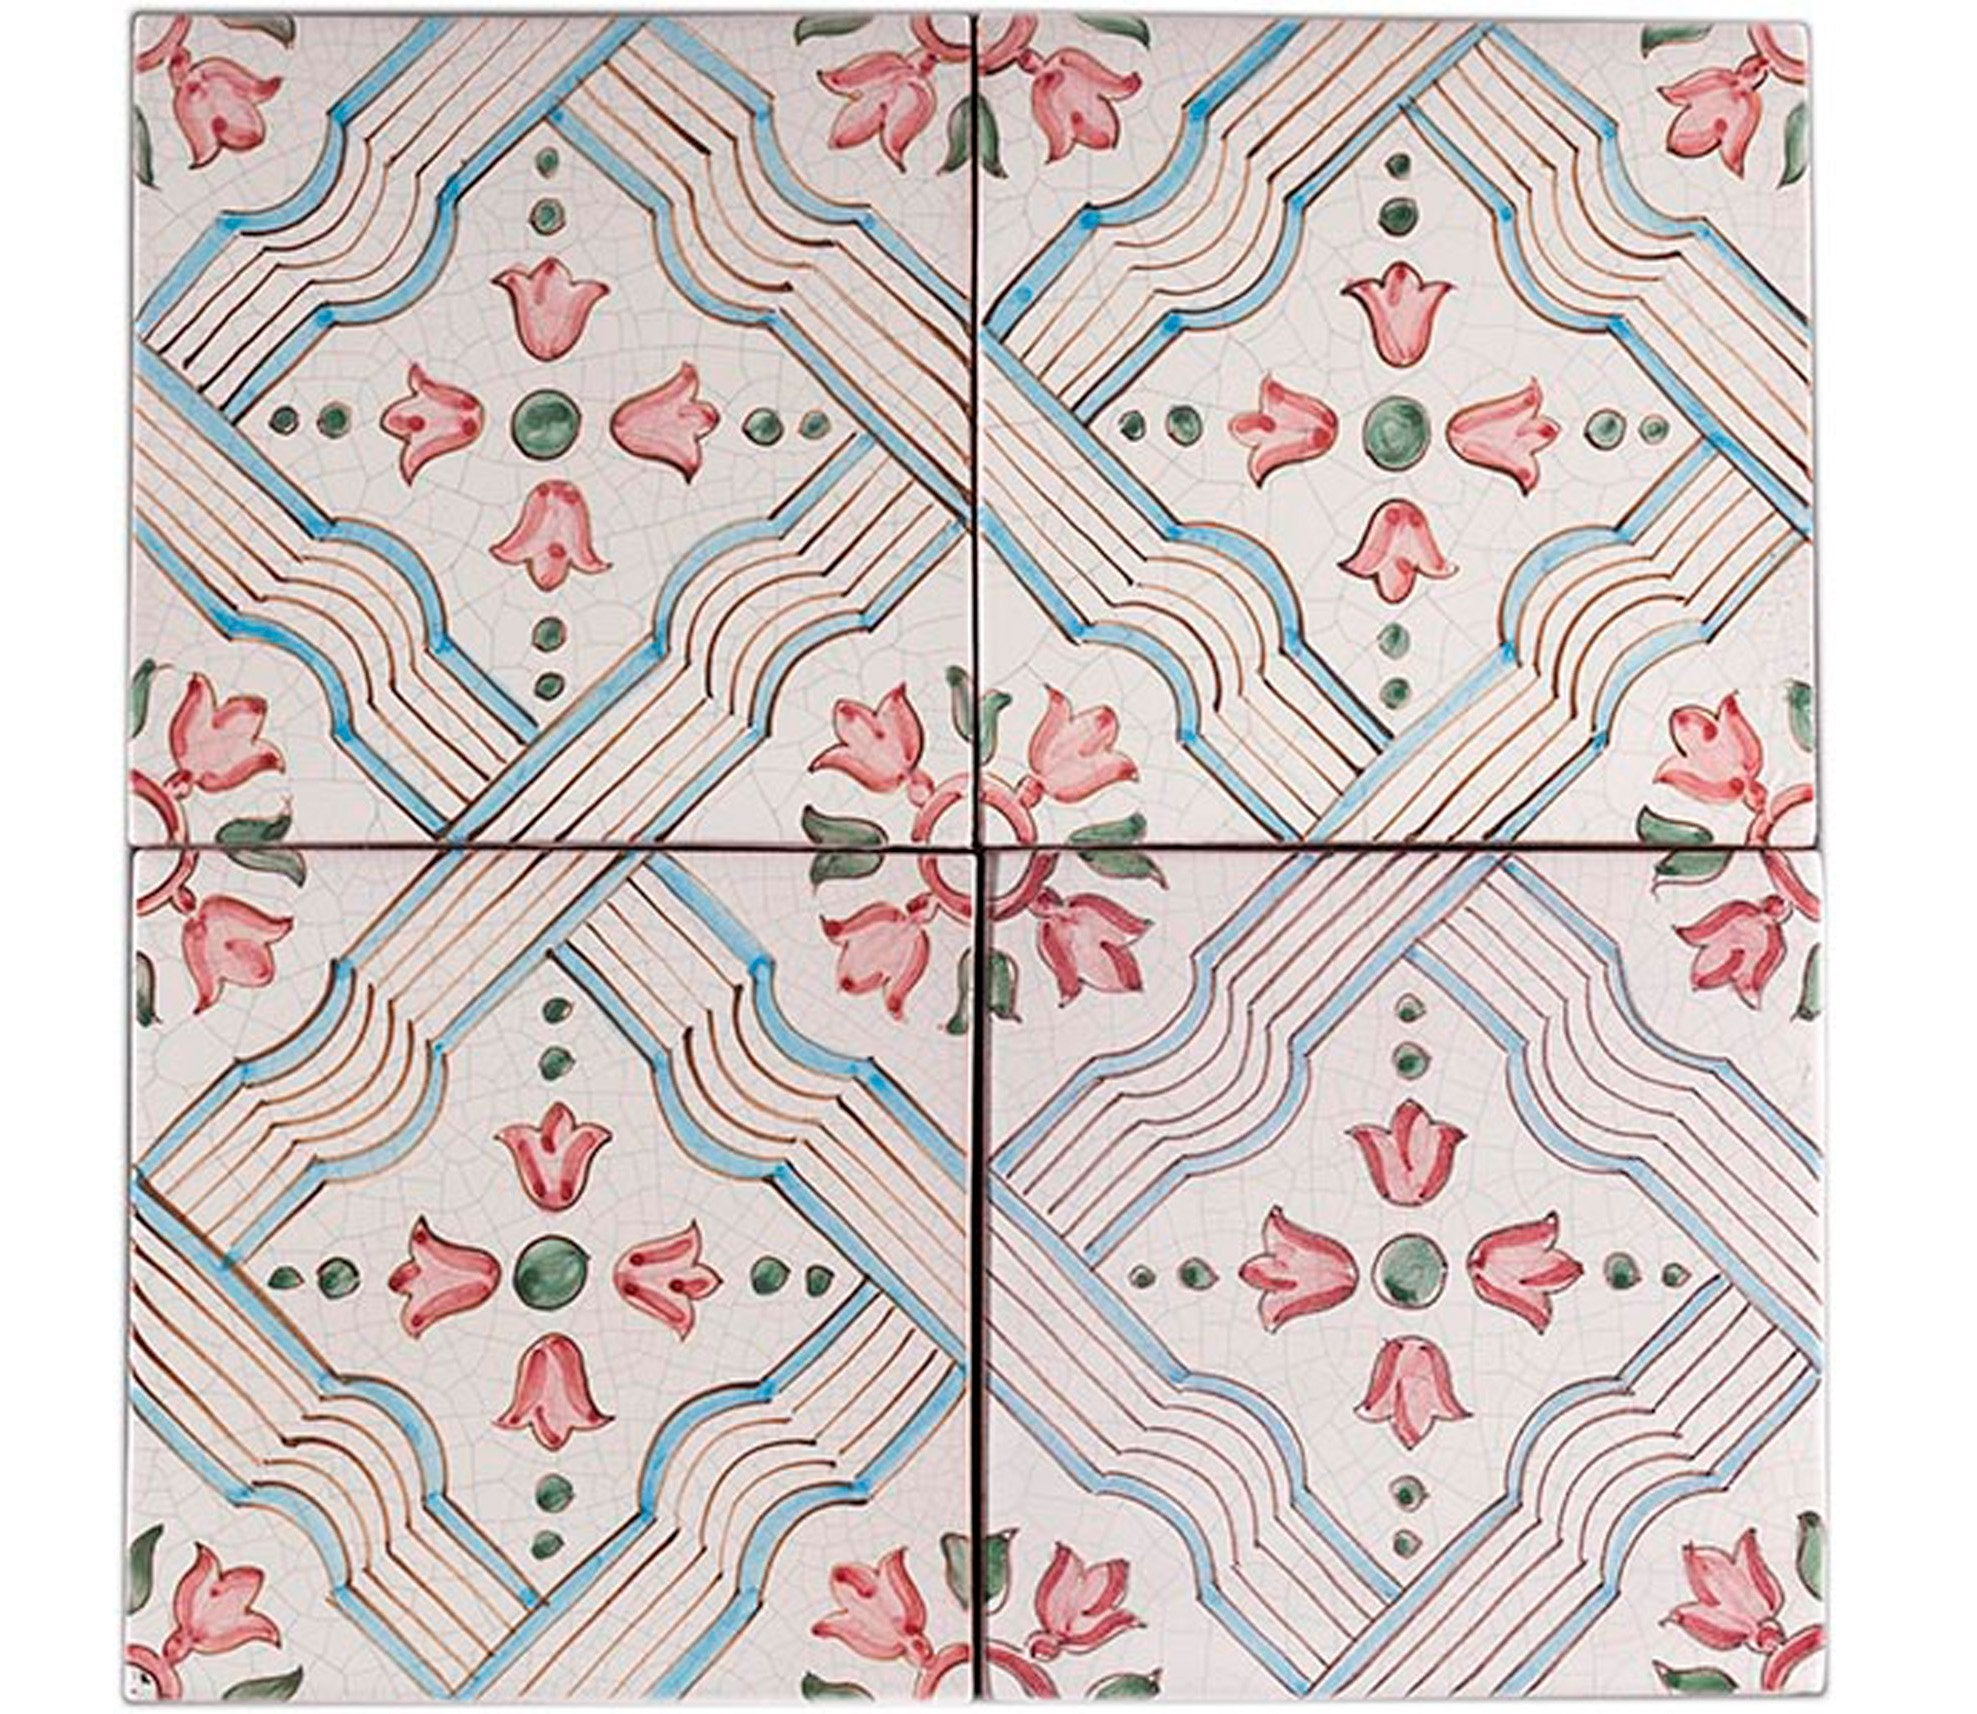 Series S Handpainted Tiles Product Image 46